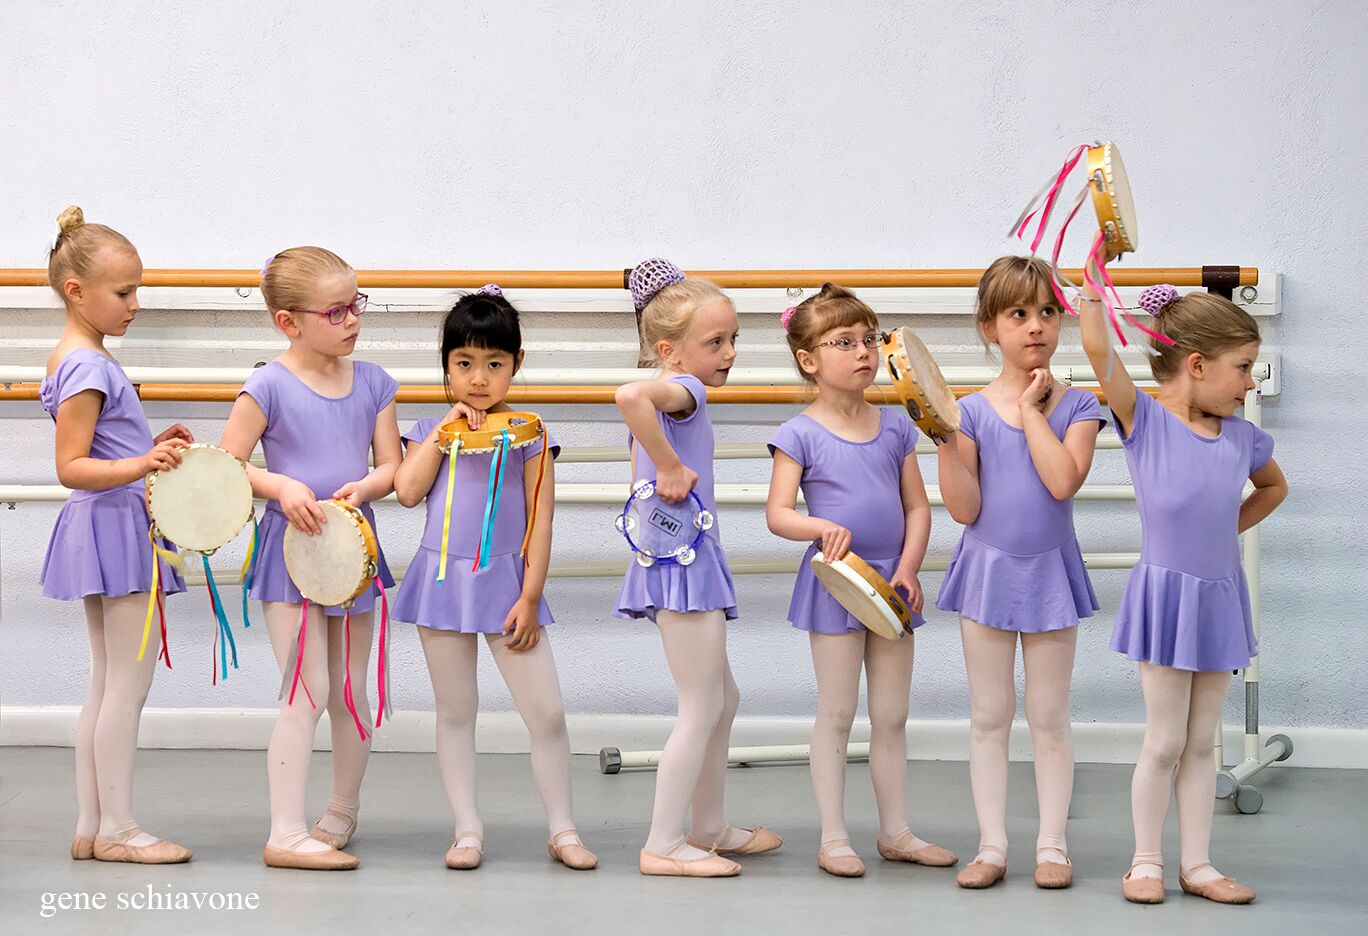 Children's ballet classes in Connecticut